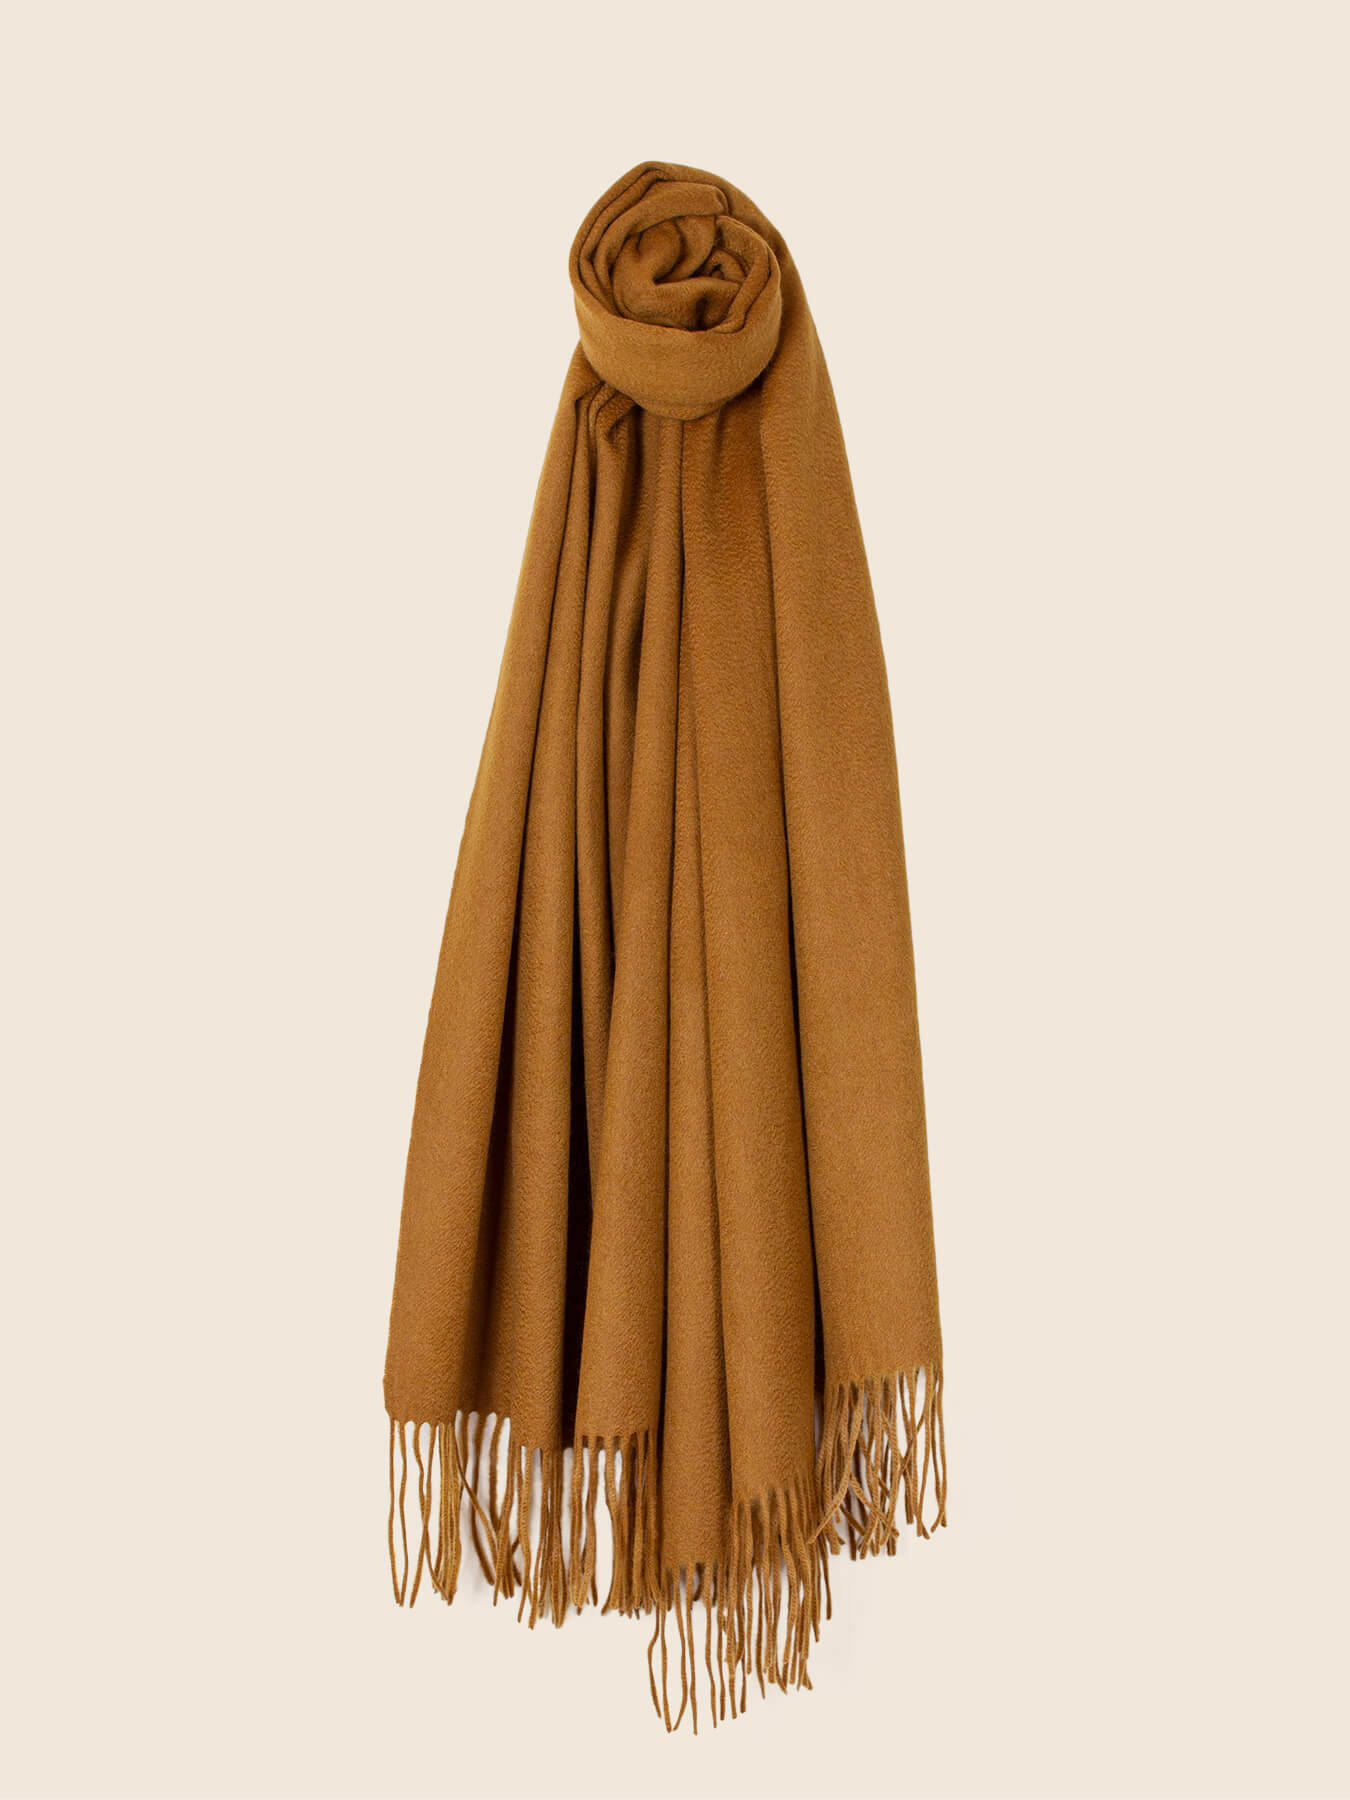 Staple Plain Cashmere Shawl Mustard 2